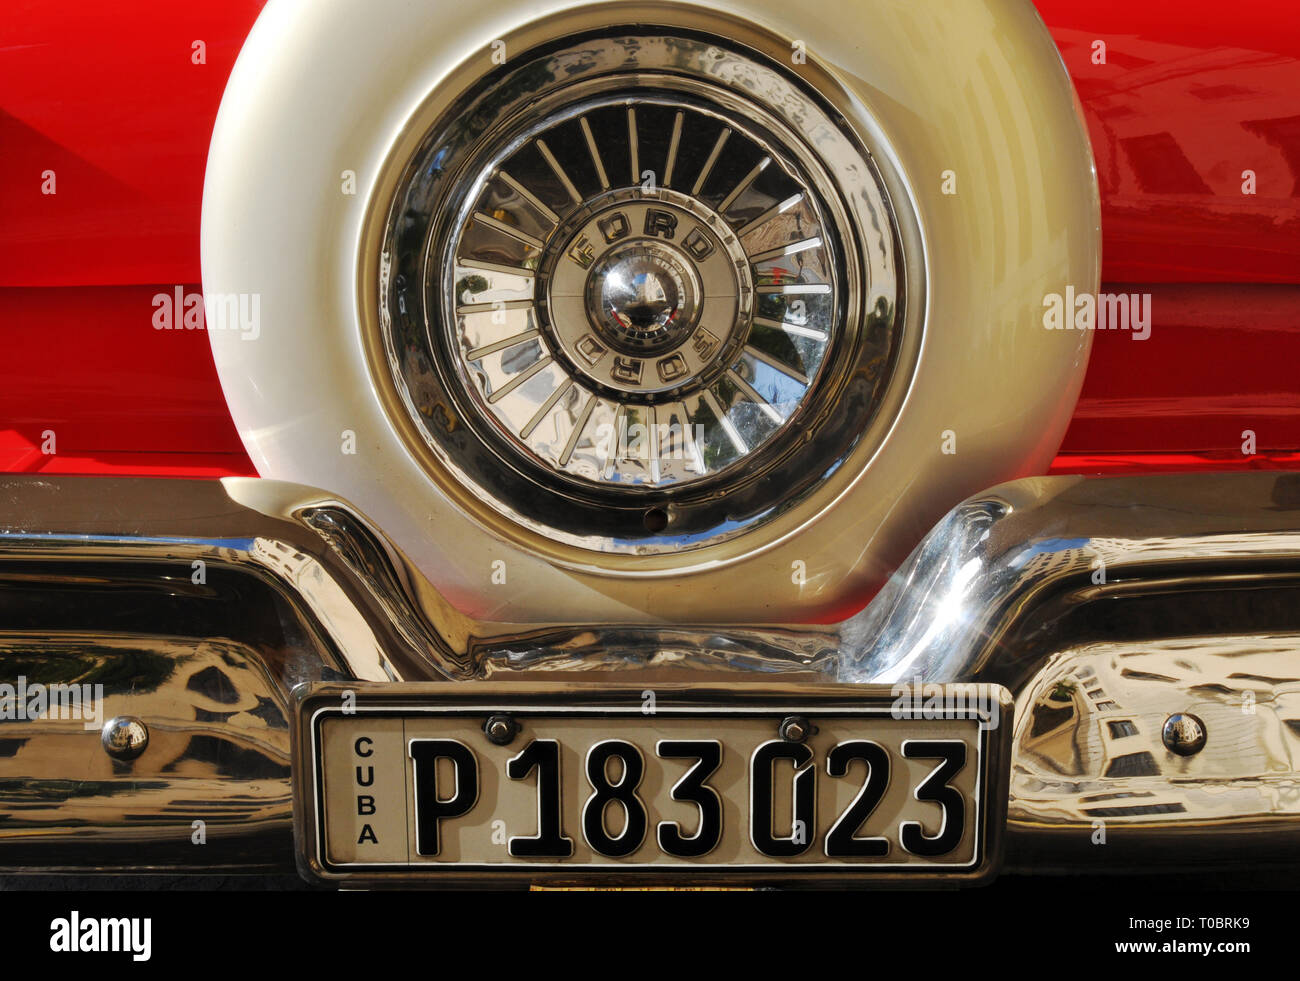 Detail of the spare tire mounted at the back of a classic Ford automobile in Havana, Cuba. - Stock Image